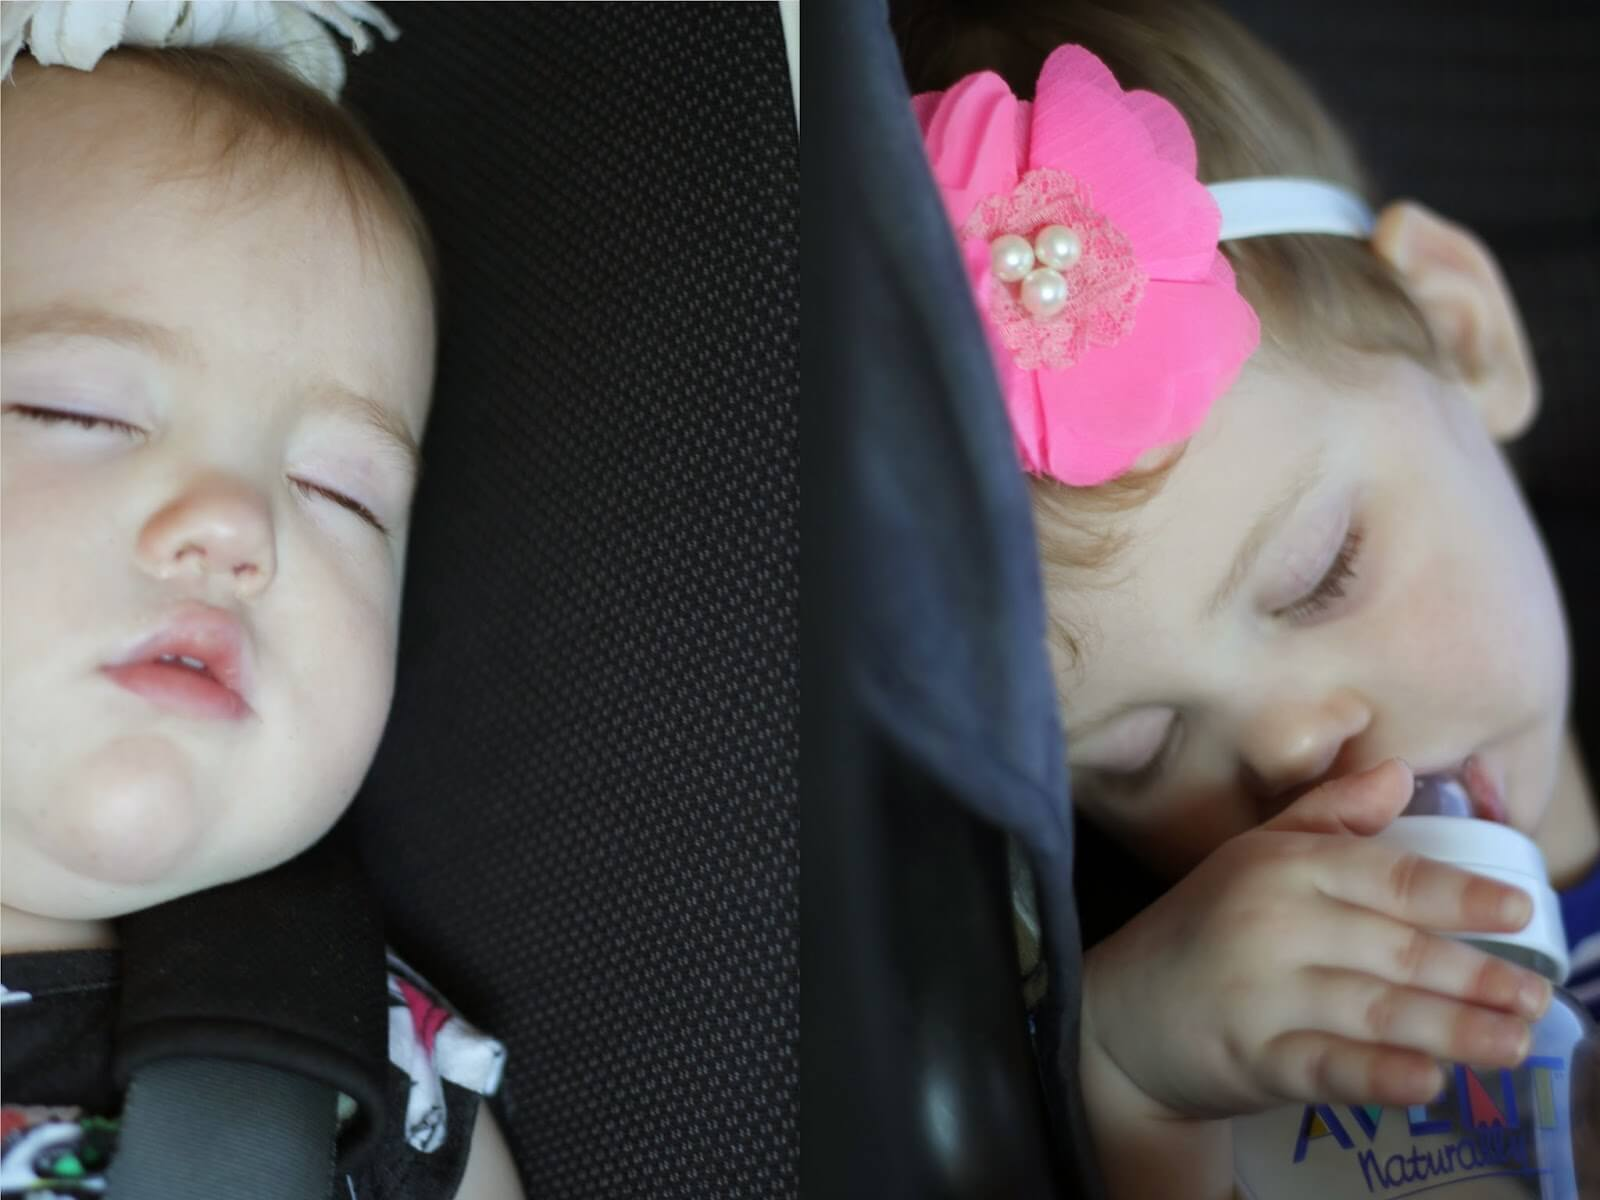 babies asleep in carseat